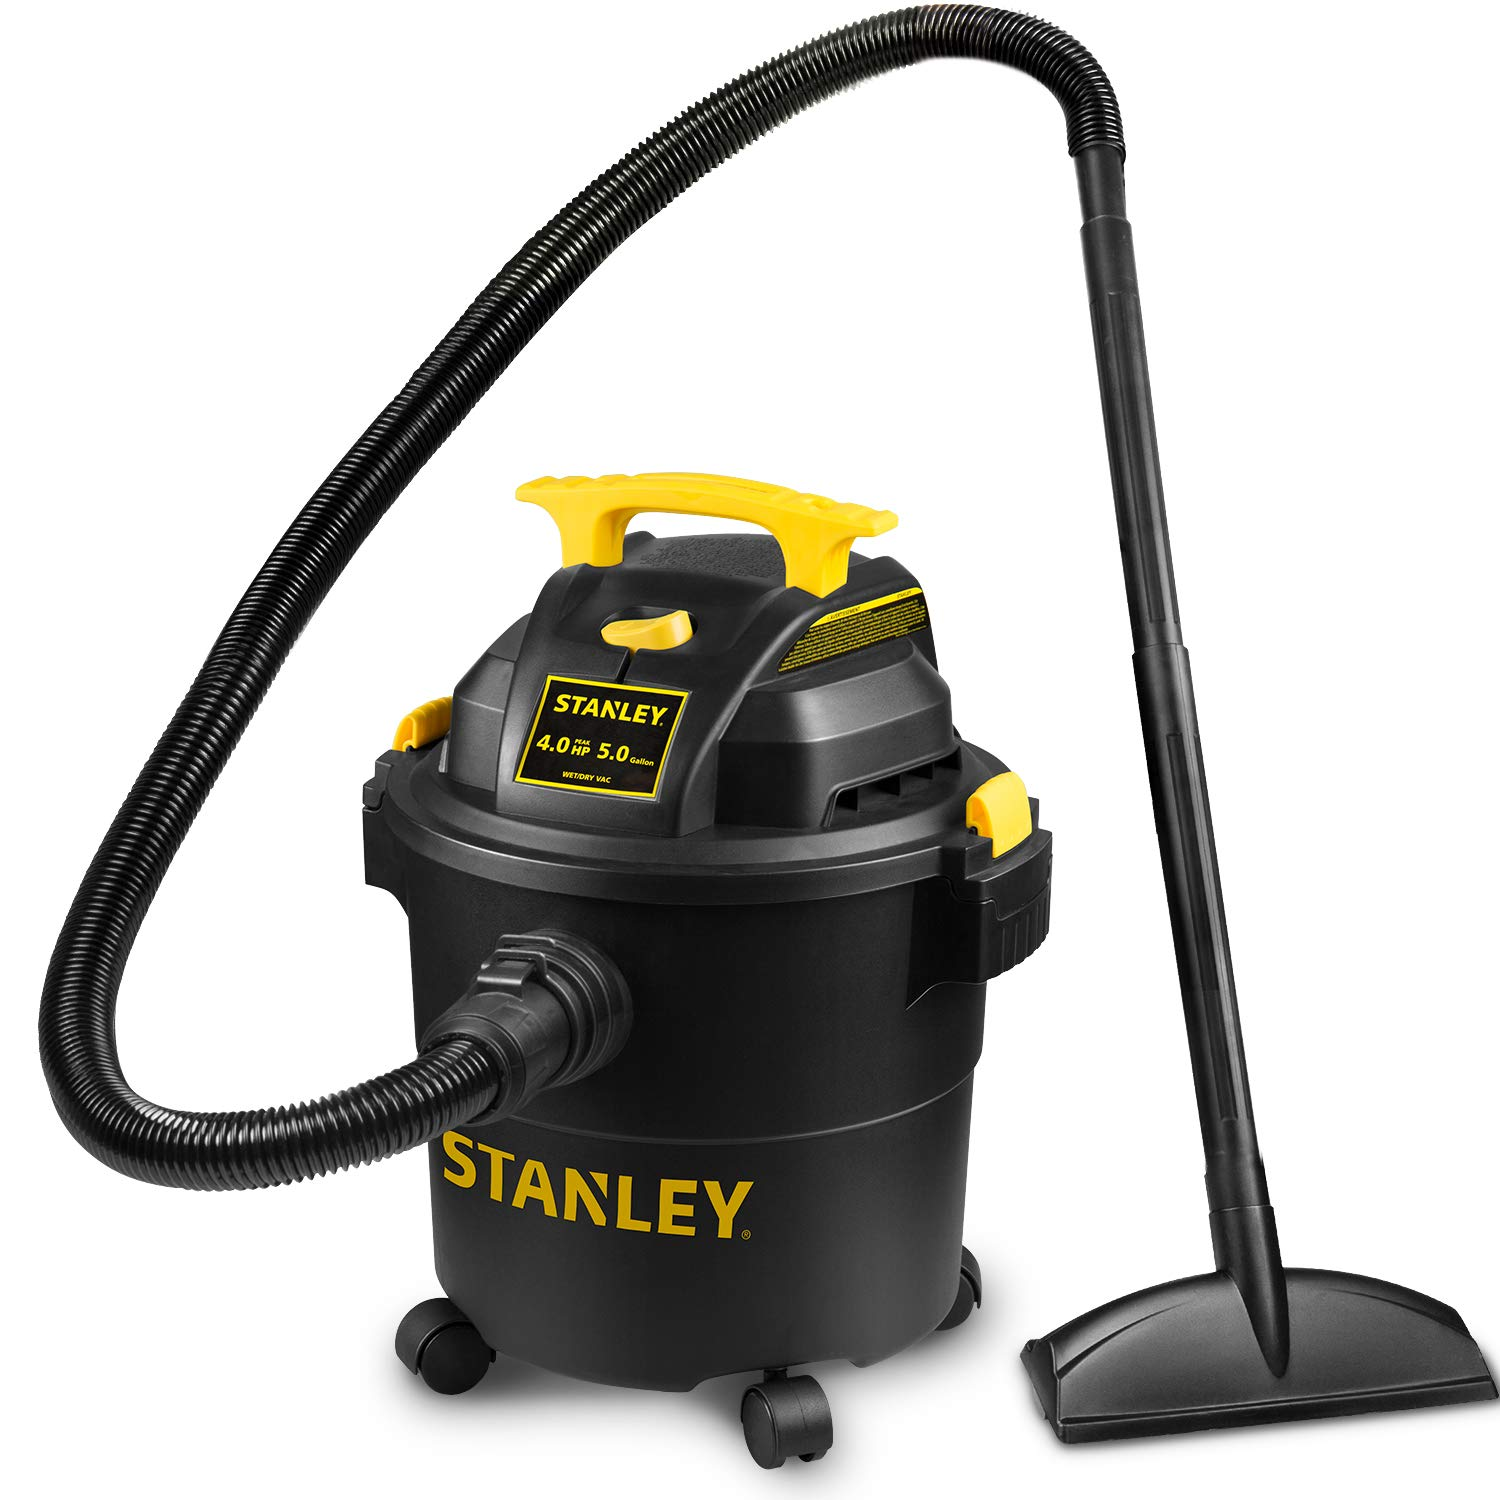 Stanley Shop Vac SL18115P, 5 Gallon Peak 3 Horsepower Wet Dry Vacuums, Blower 3 In 1 Functions 20 Feet Cleaning Range For Garage, Carpet Clean, Shop Cleaning, Car Detailing with Attachments